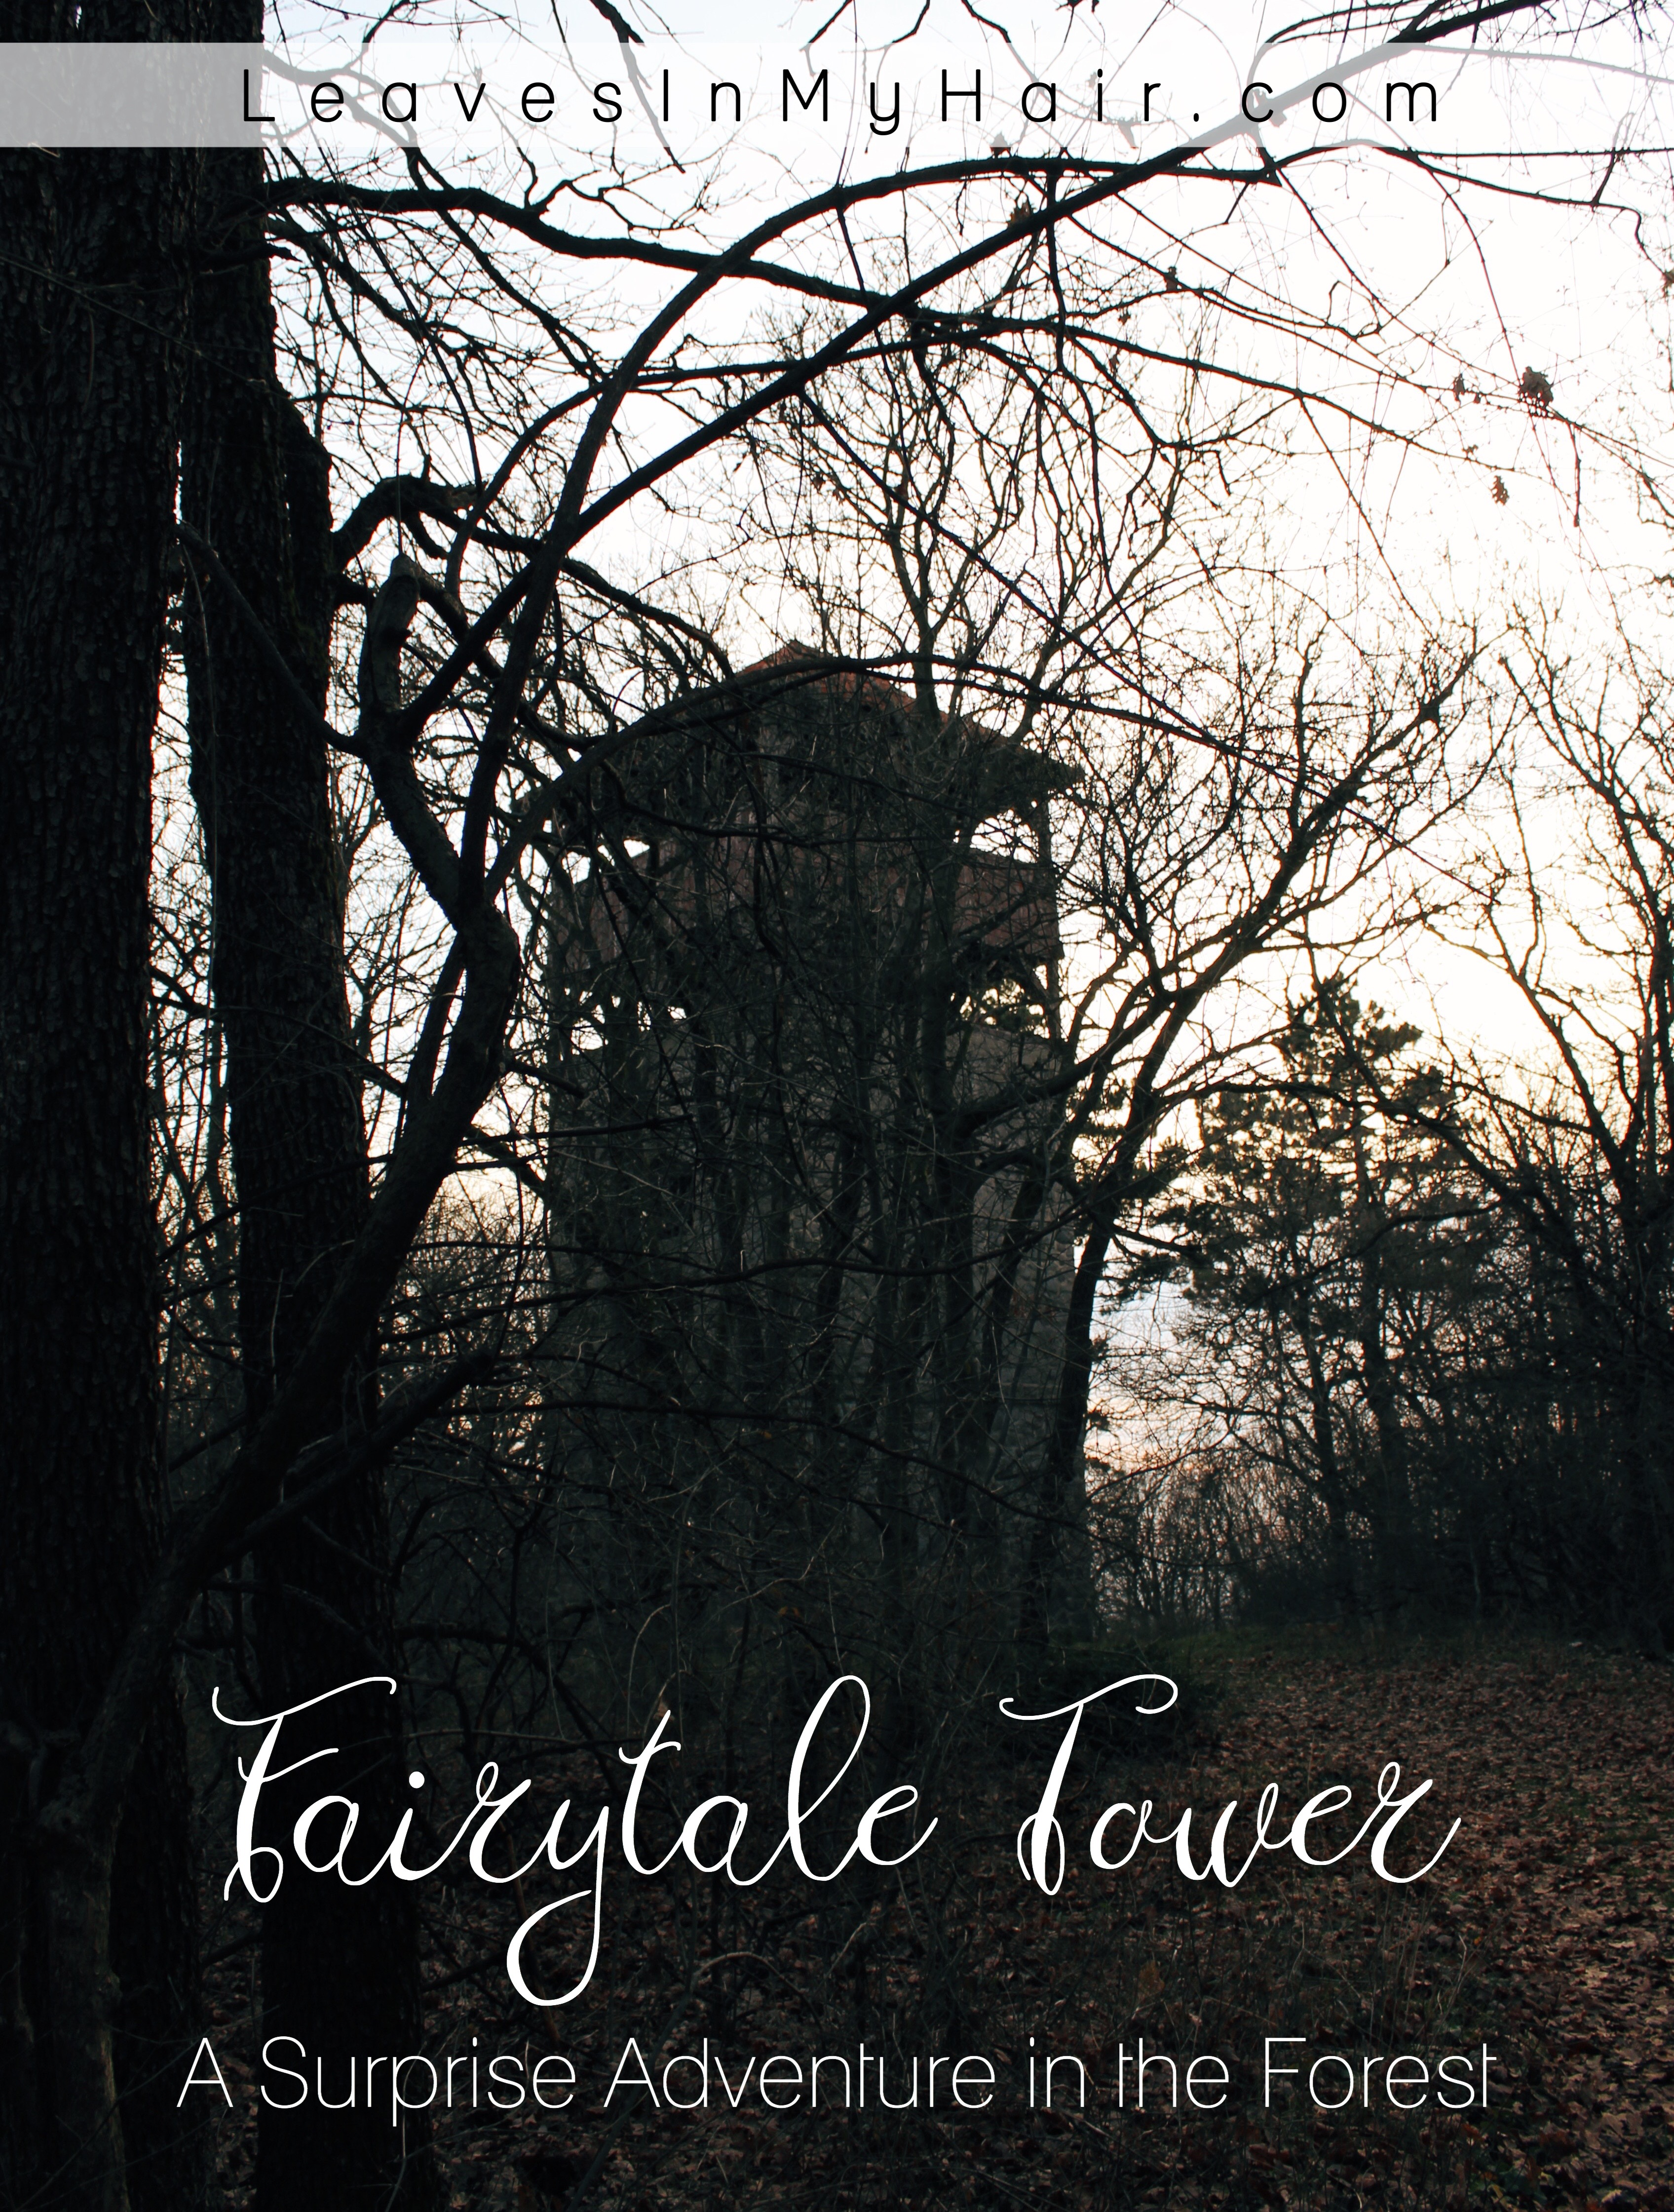 Fairytale Tower: A Surprise Adventure in the Forest